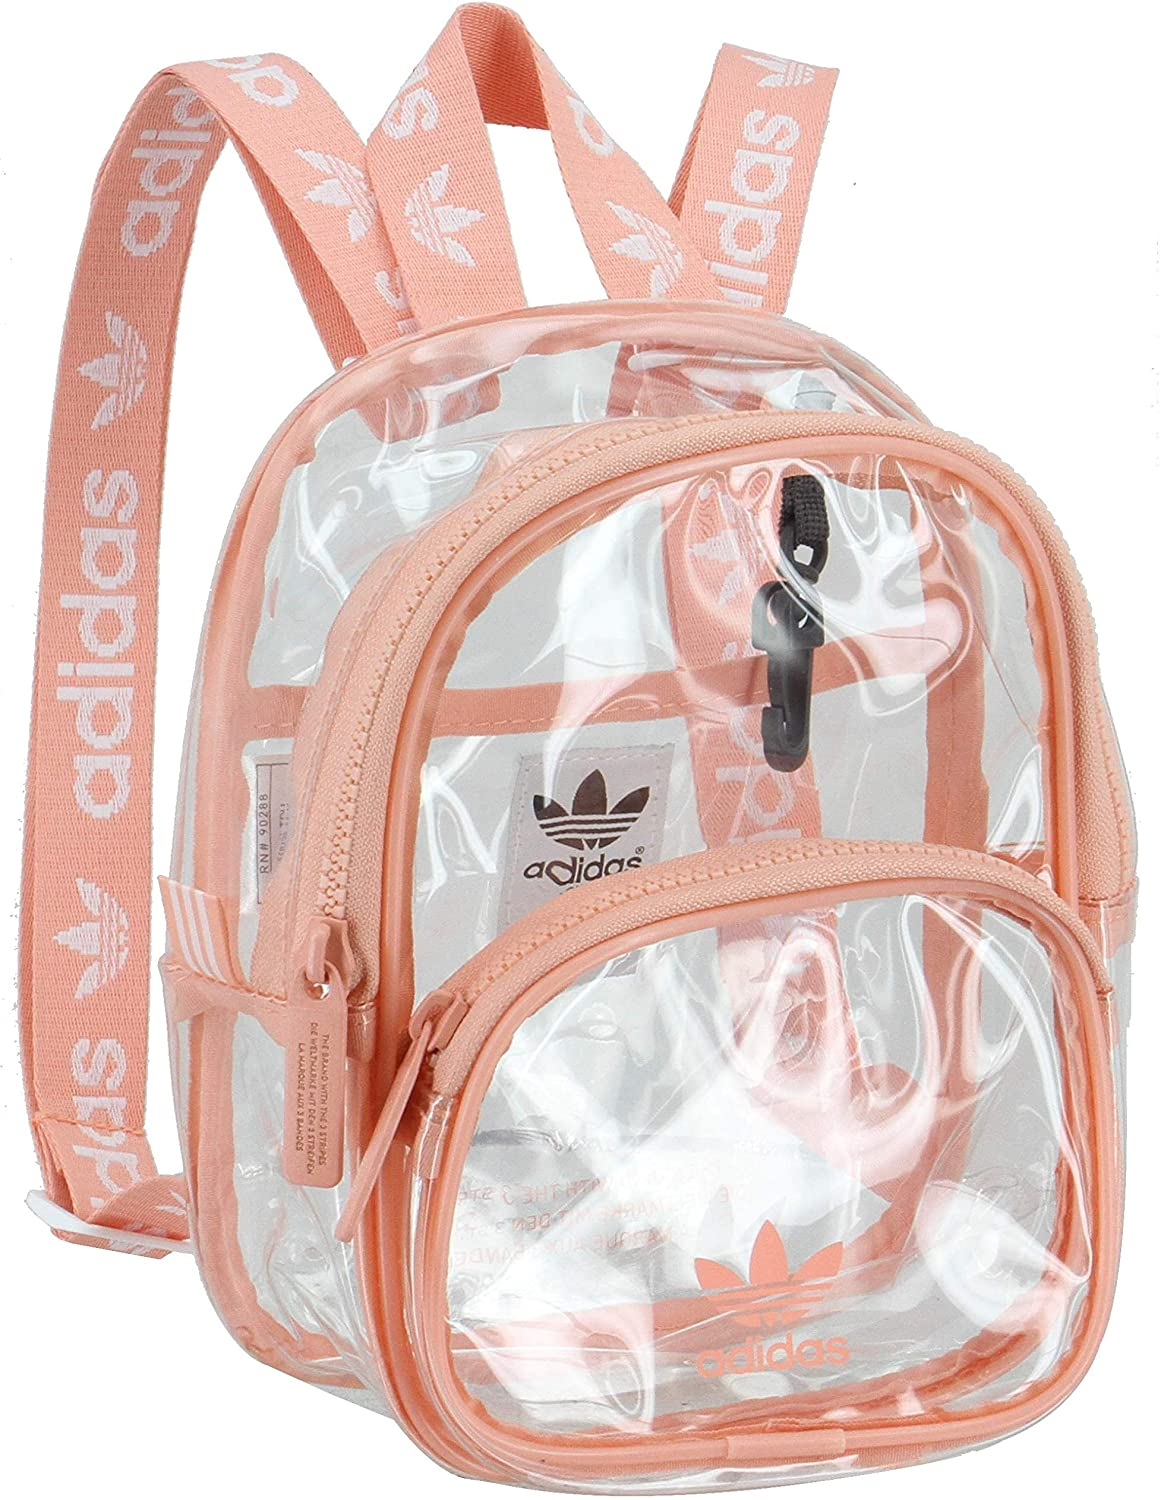 adidas Originals Unisex Clear Mini Backpack, Dust Pink, ONE SIZE